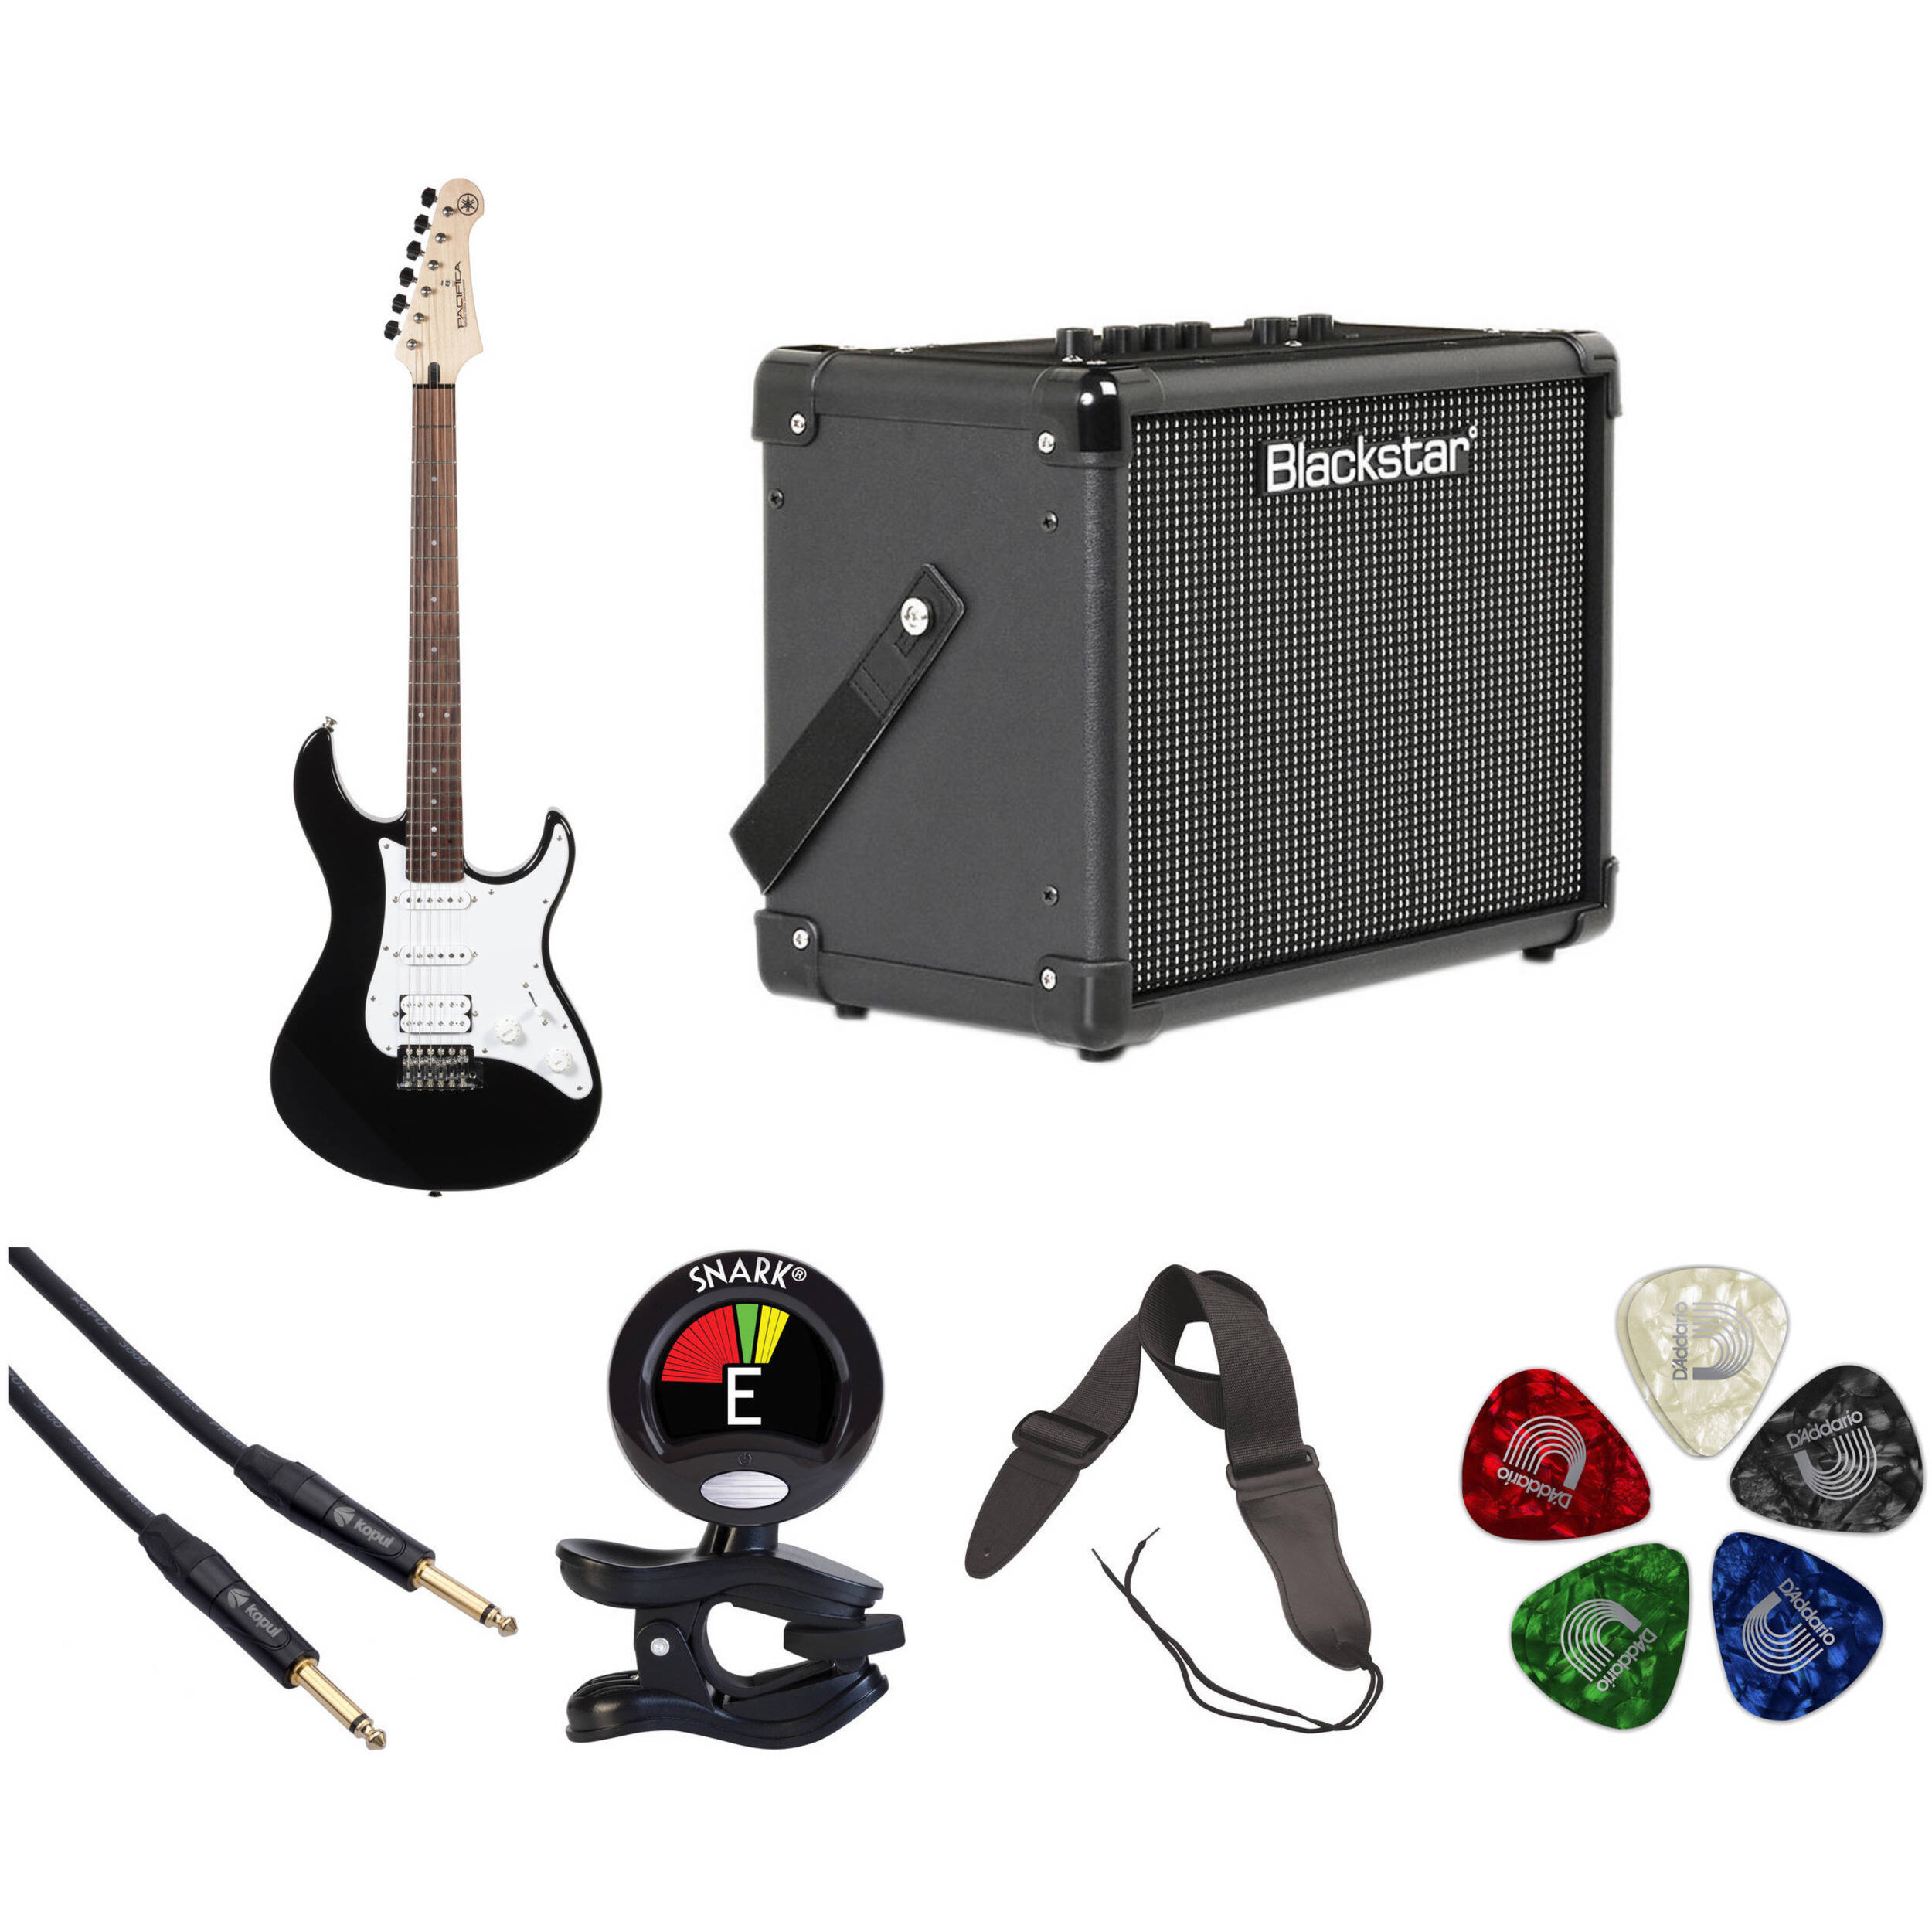 5 Way Switch Yamaha Pacifica Switches Explained Alloutputcom Pac012 Electric Guitar Starter Kit Black Bh